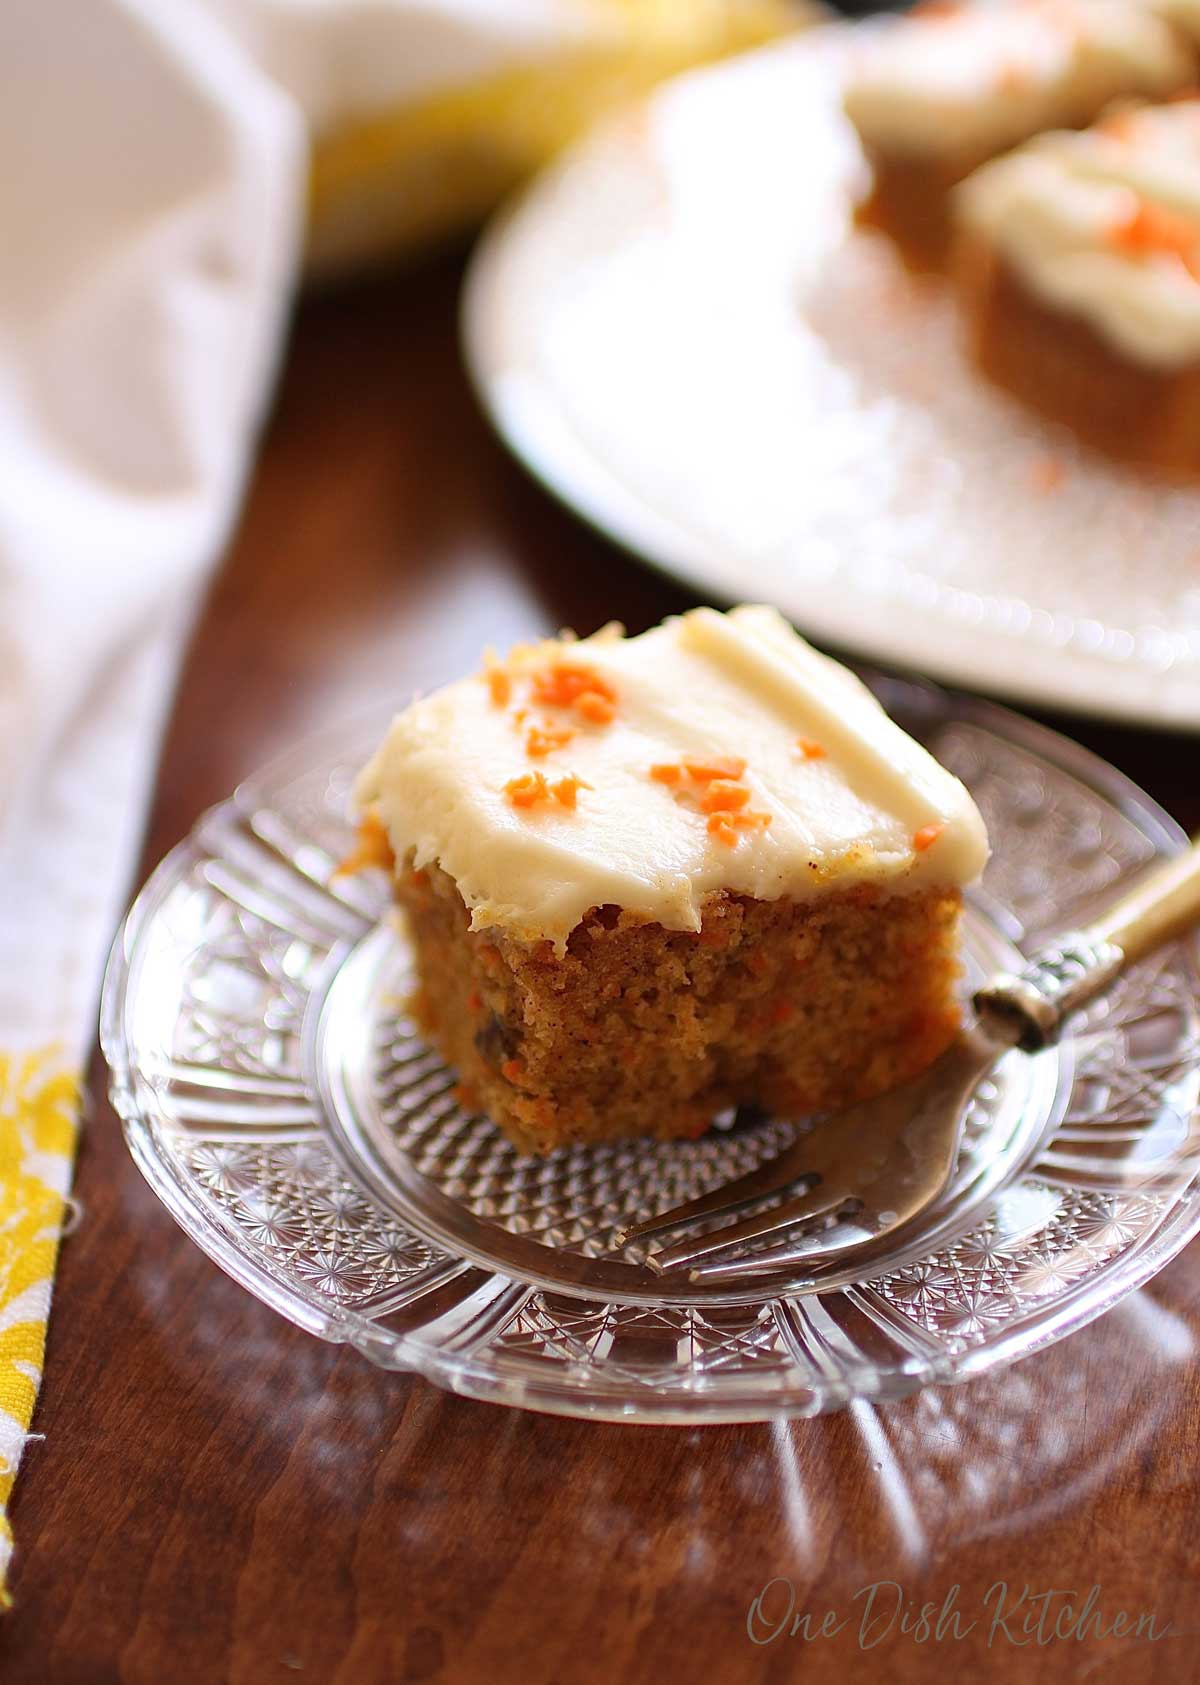 A square slice of carrot cake on a small plate with a fork